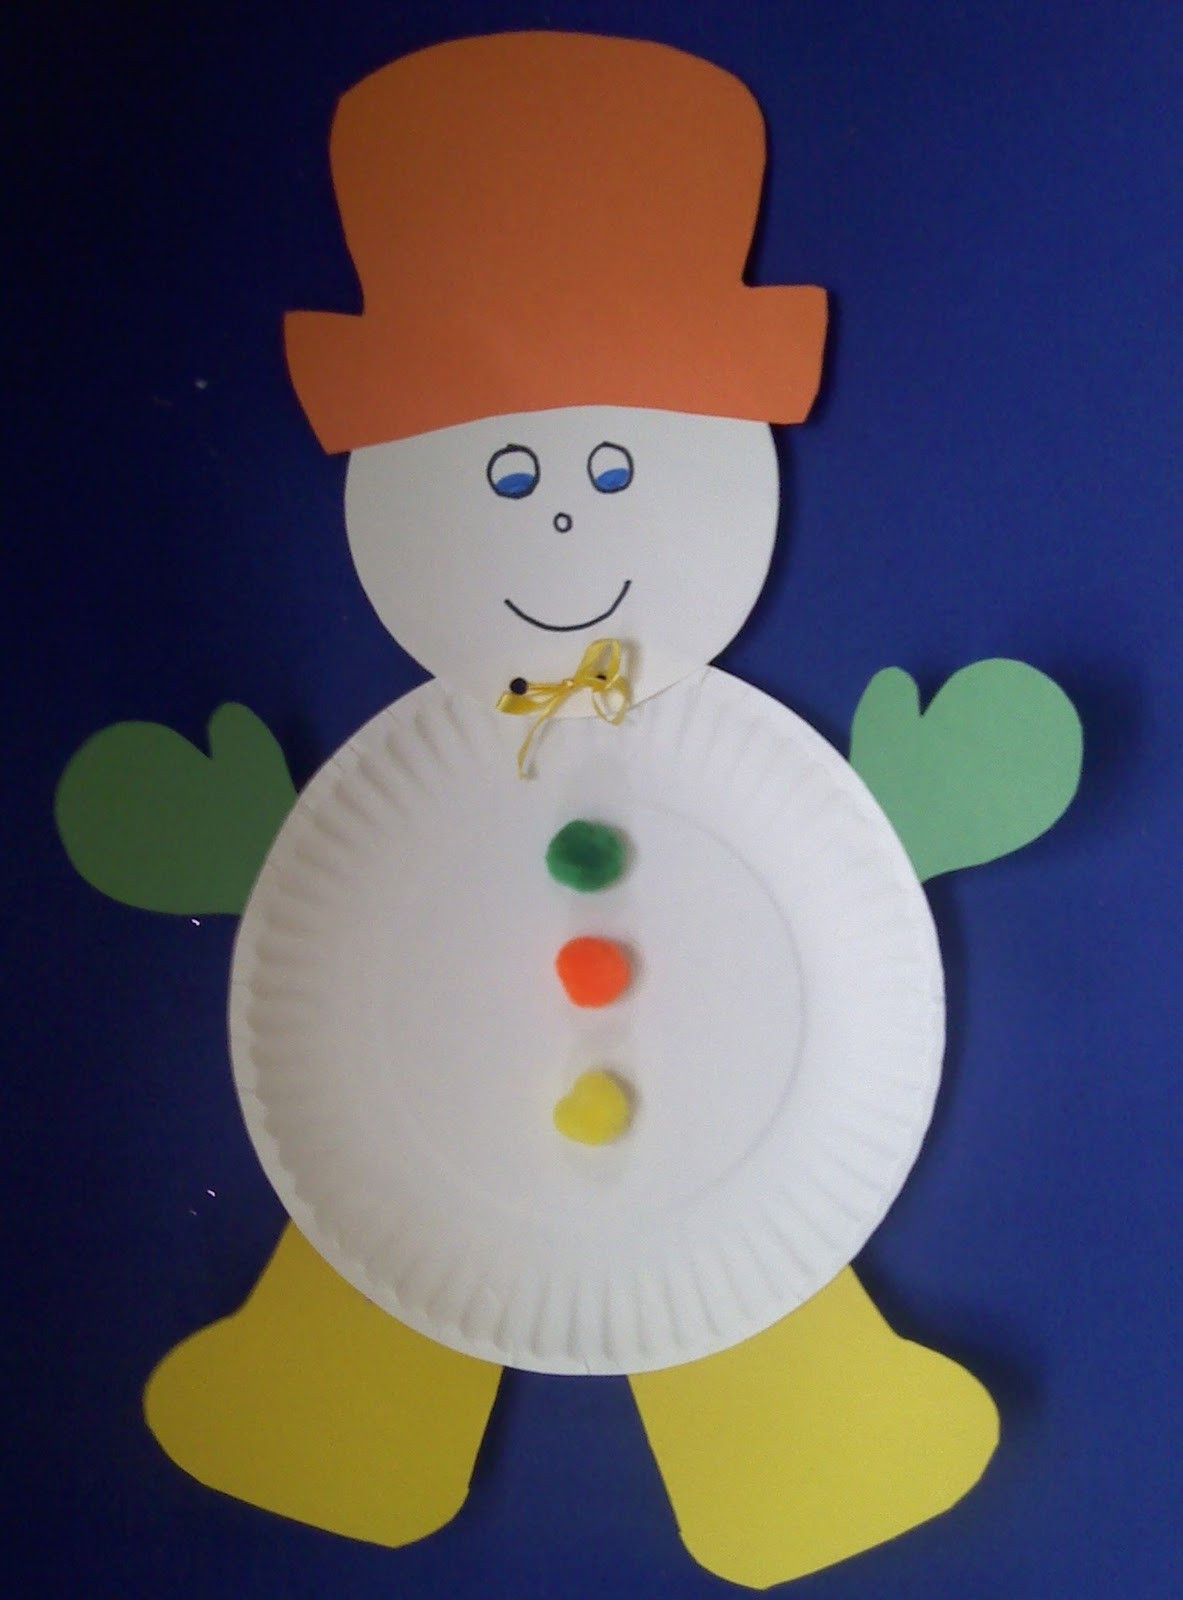 Best ideas about Crafts For Preschool Kids . Save or Pin Crafts For Preschoolers January 2012 Now.